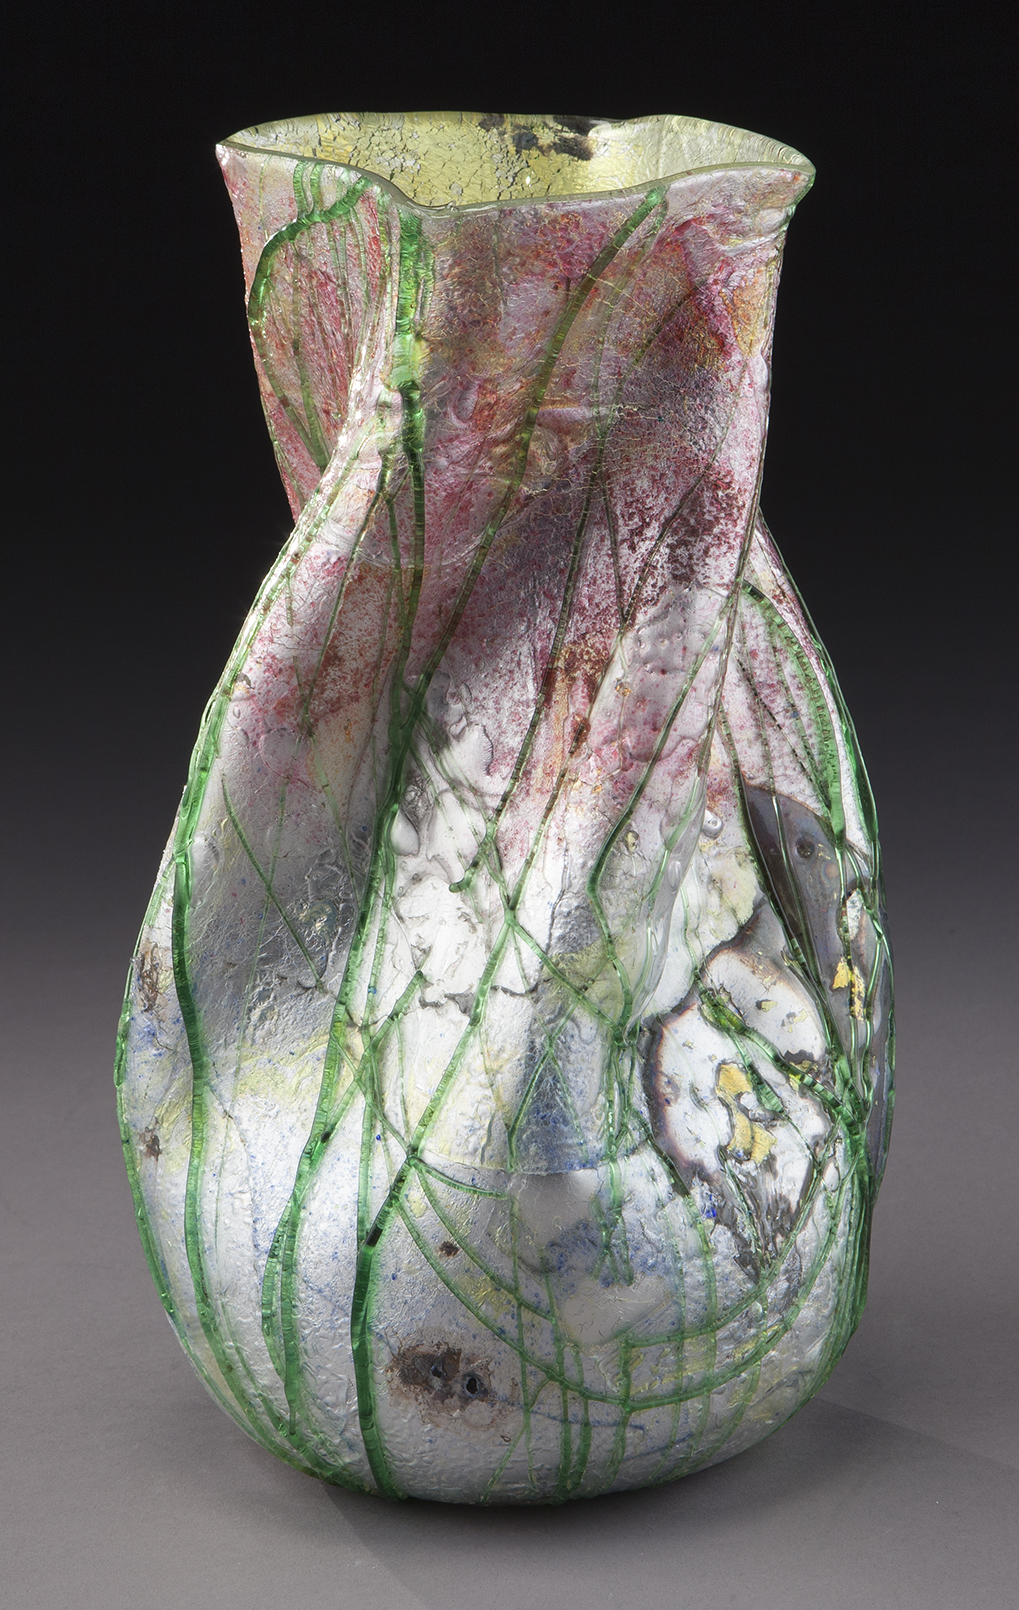 """Steven & Williams silveria glass vase, twist form with applied green threading over silver platinum and rose ground. With Stevens and Williams Fleur-de-lis signature. 11.25""""H, Circa - 1920."""